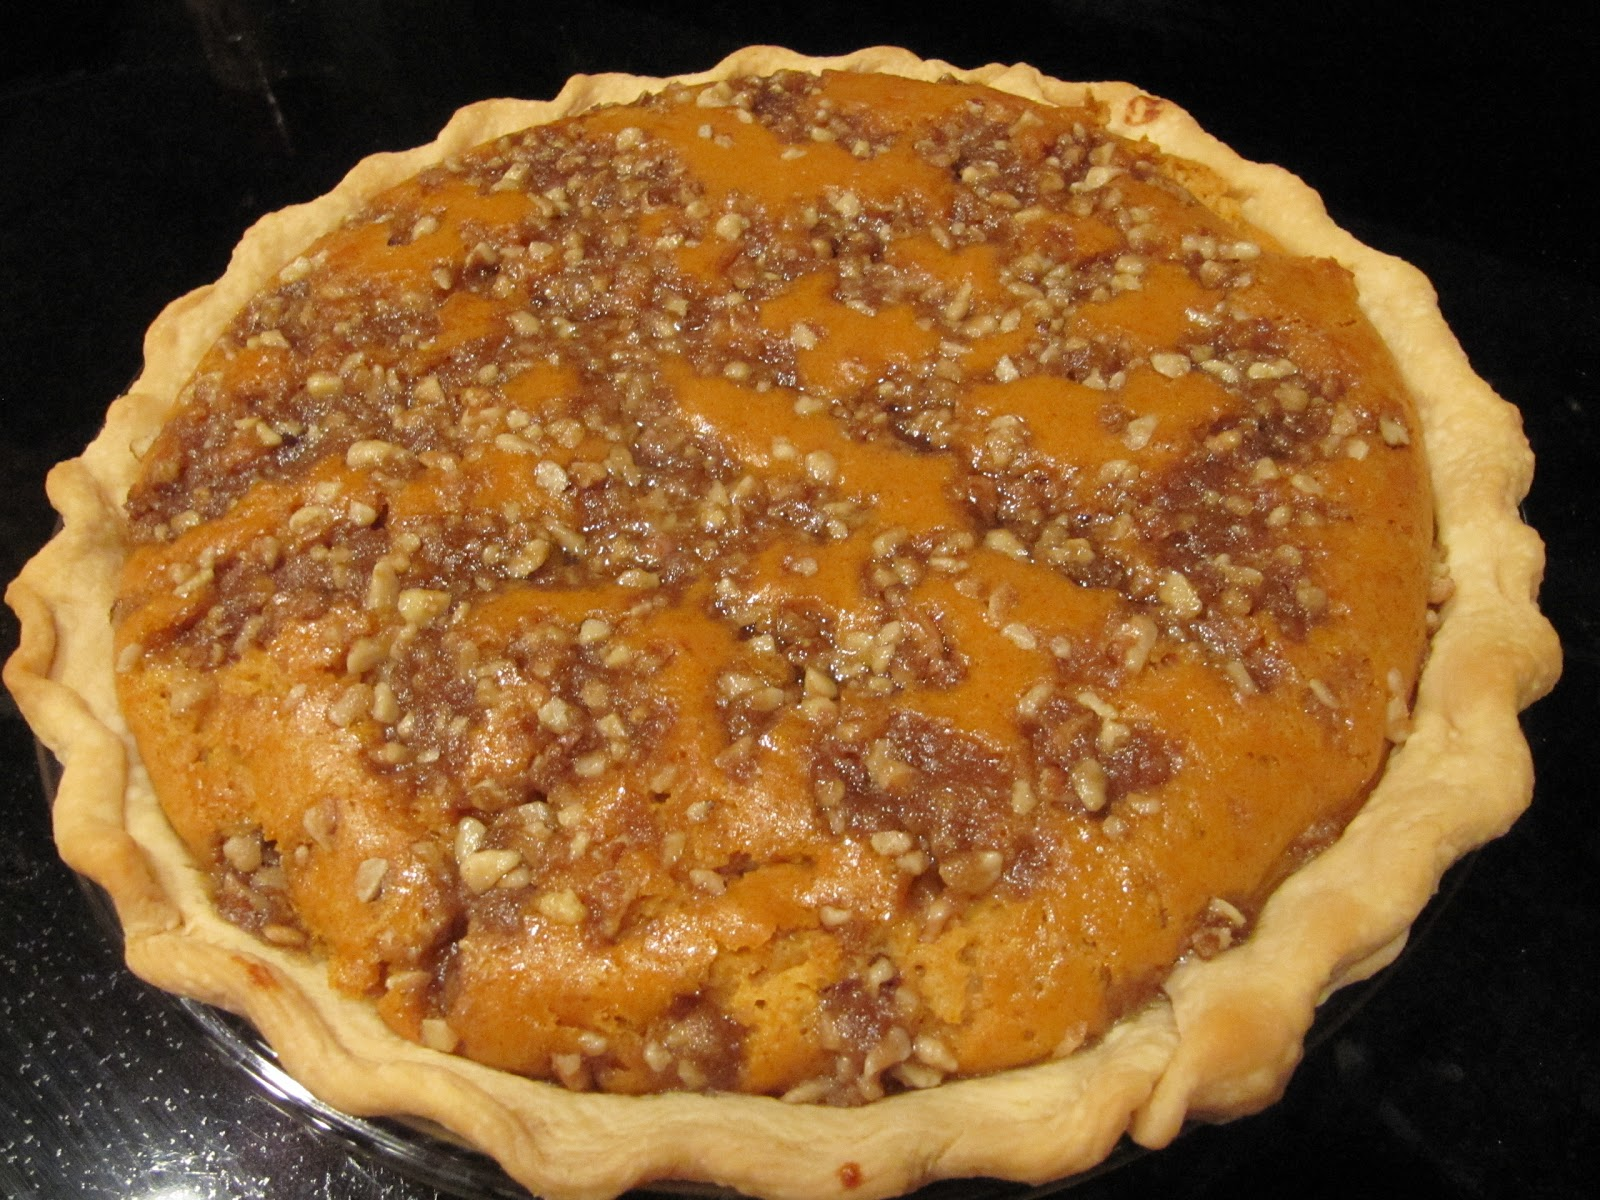 Confessions of a Health Queen: Maple-Walnut Pumpkin Pie